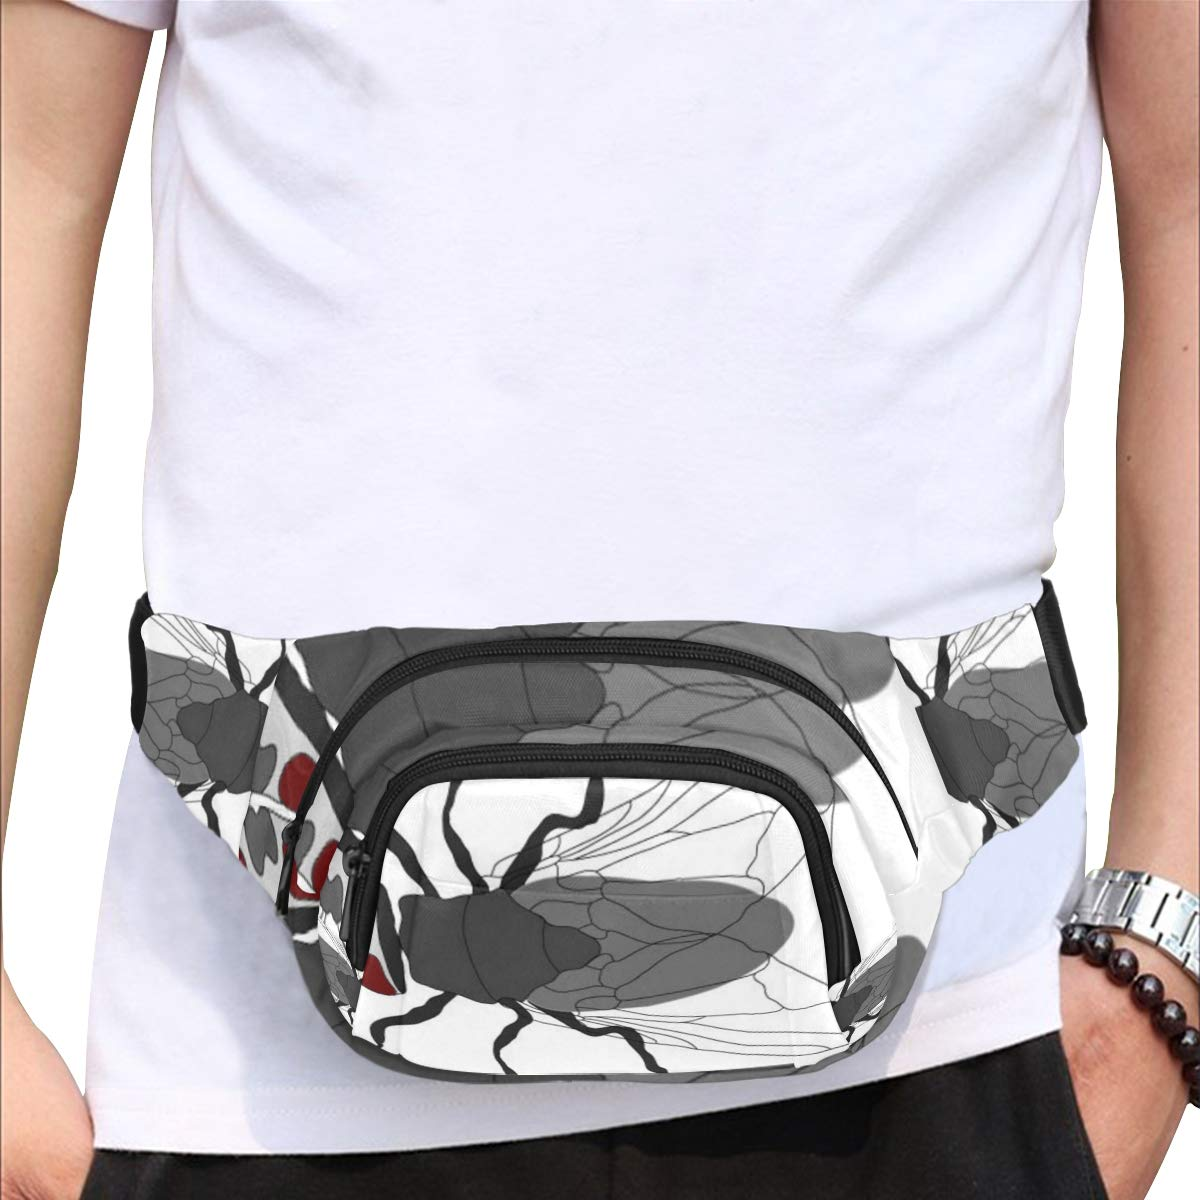 Flying Insect Cartoon Flies Animation Fenny Packs Waist Bags Adjustable Belt Waterproof Nylon Travel Running Sport Vacation Party For Men Women Boys Girls Kids